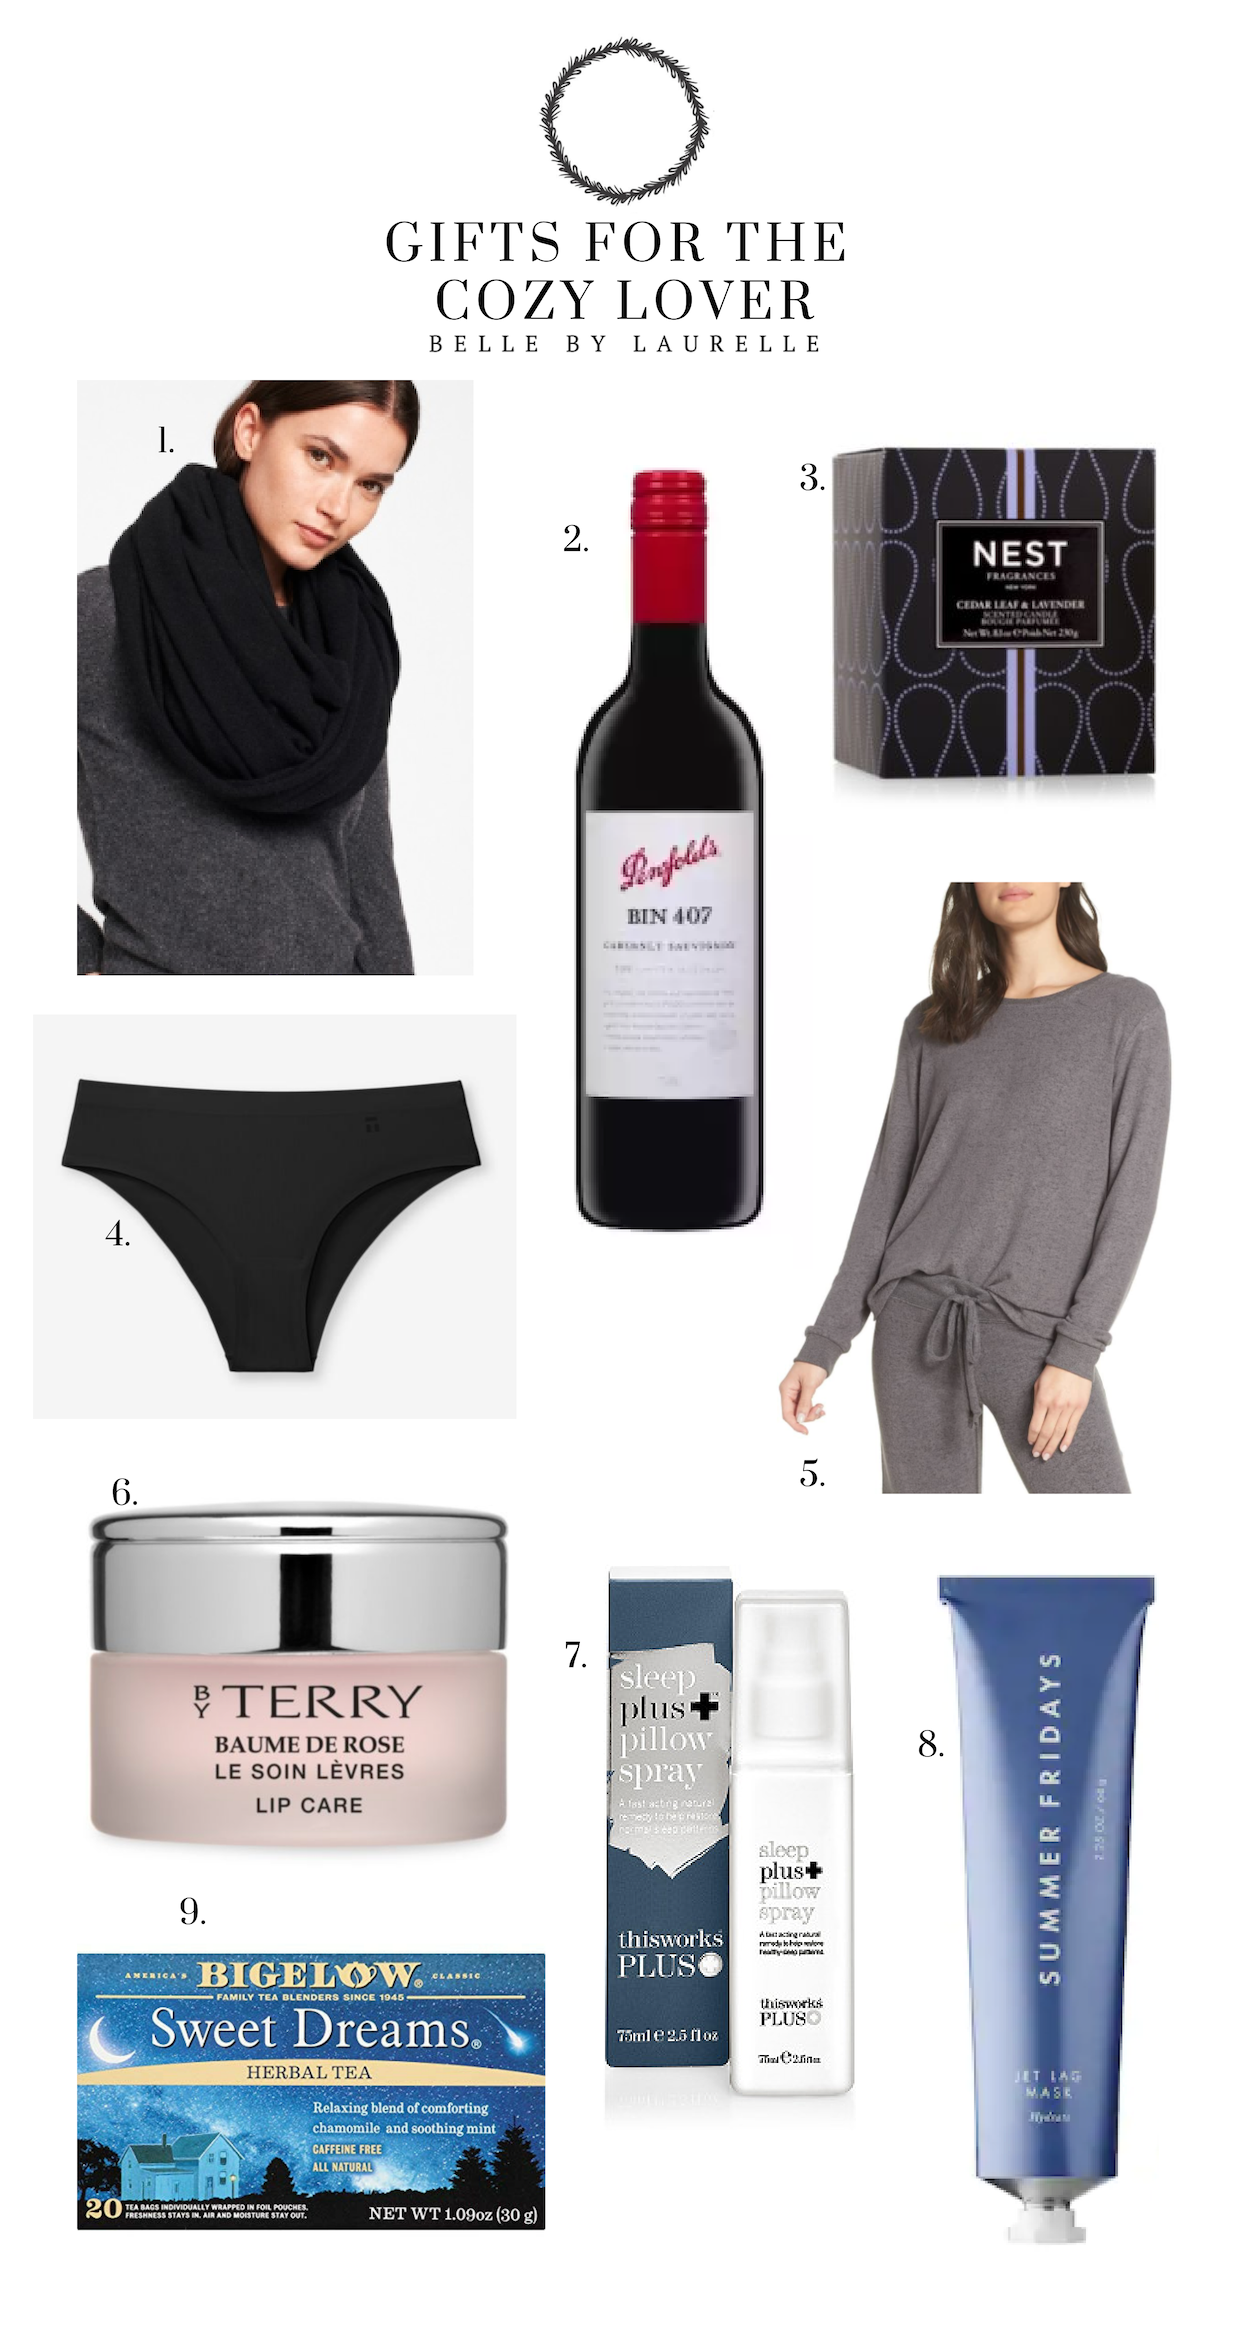 Gifts for the Cozy Lover Belle by Laurelle Fashion Blog Gift Guide